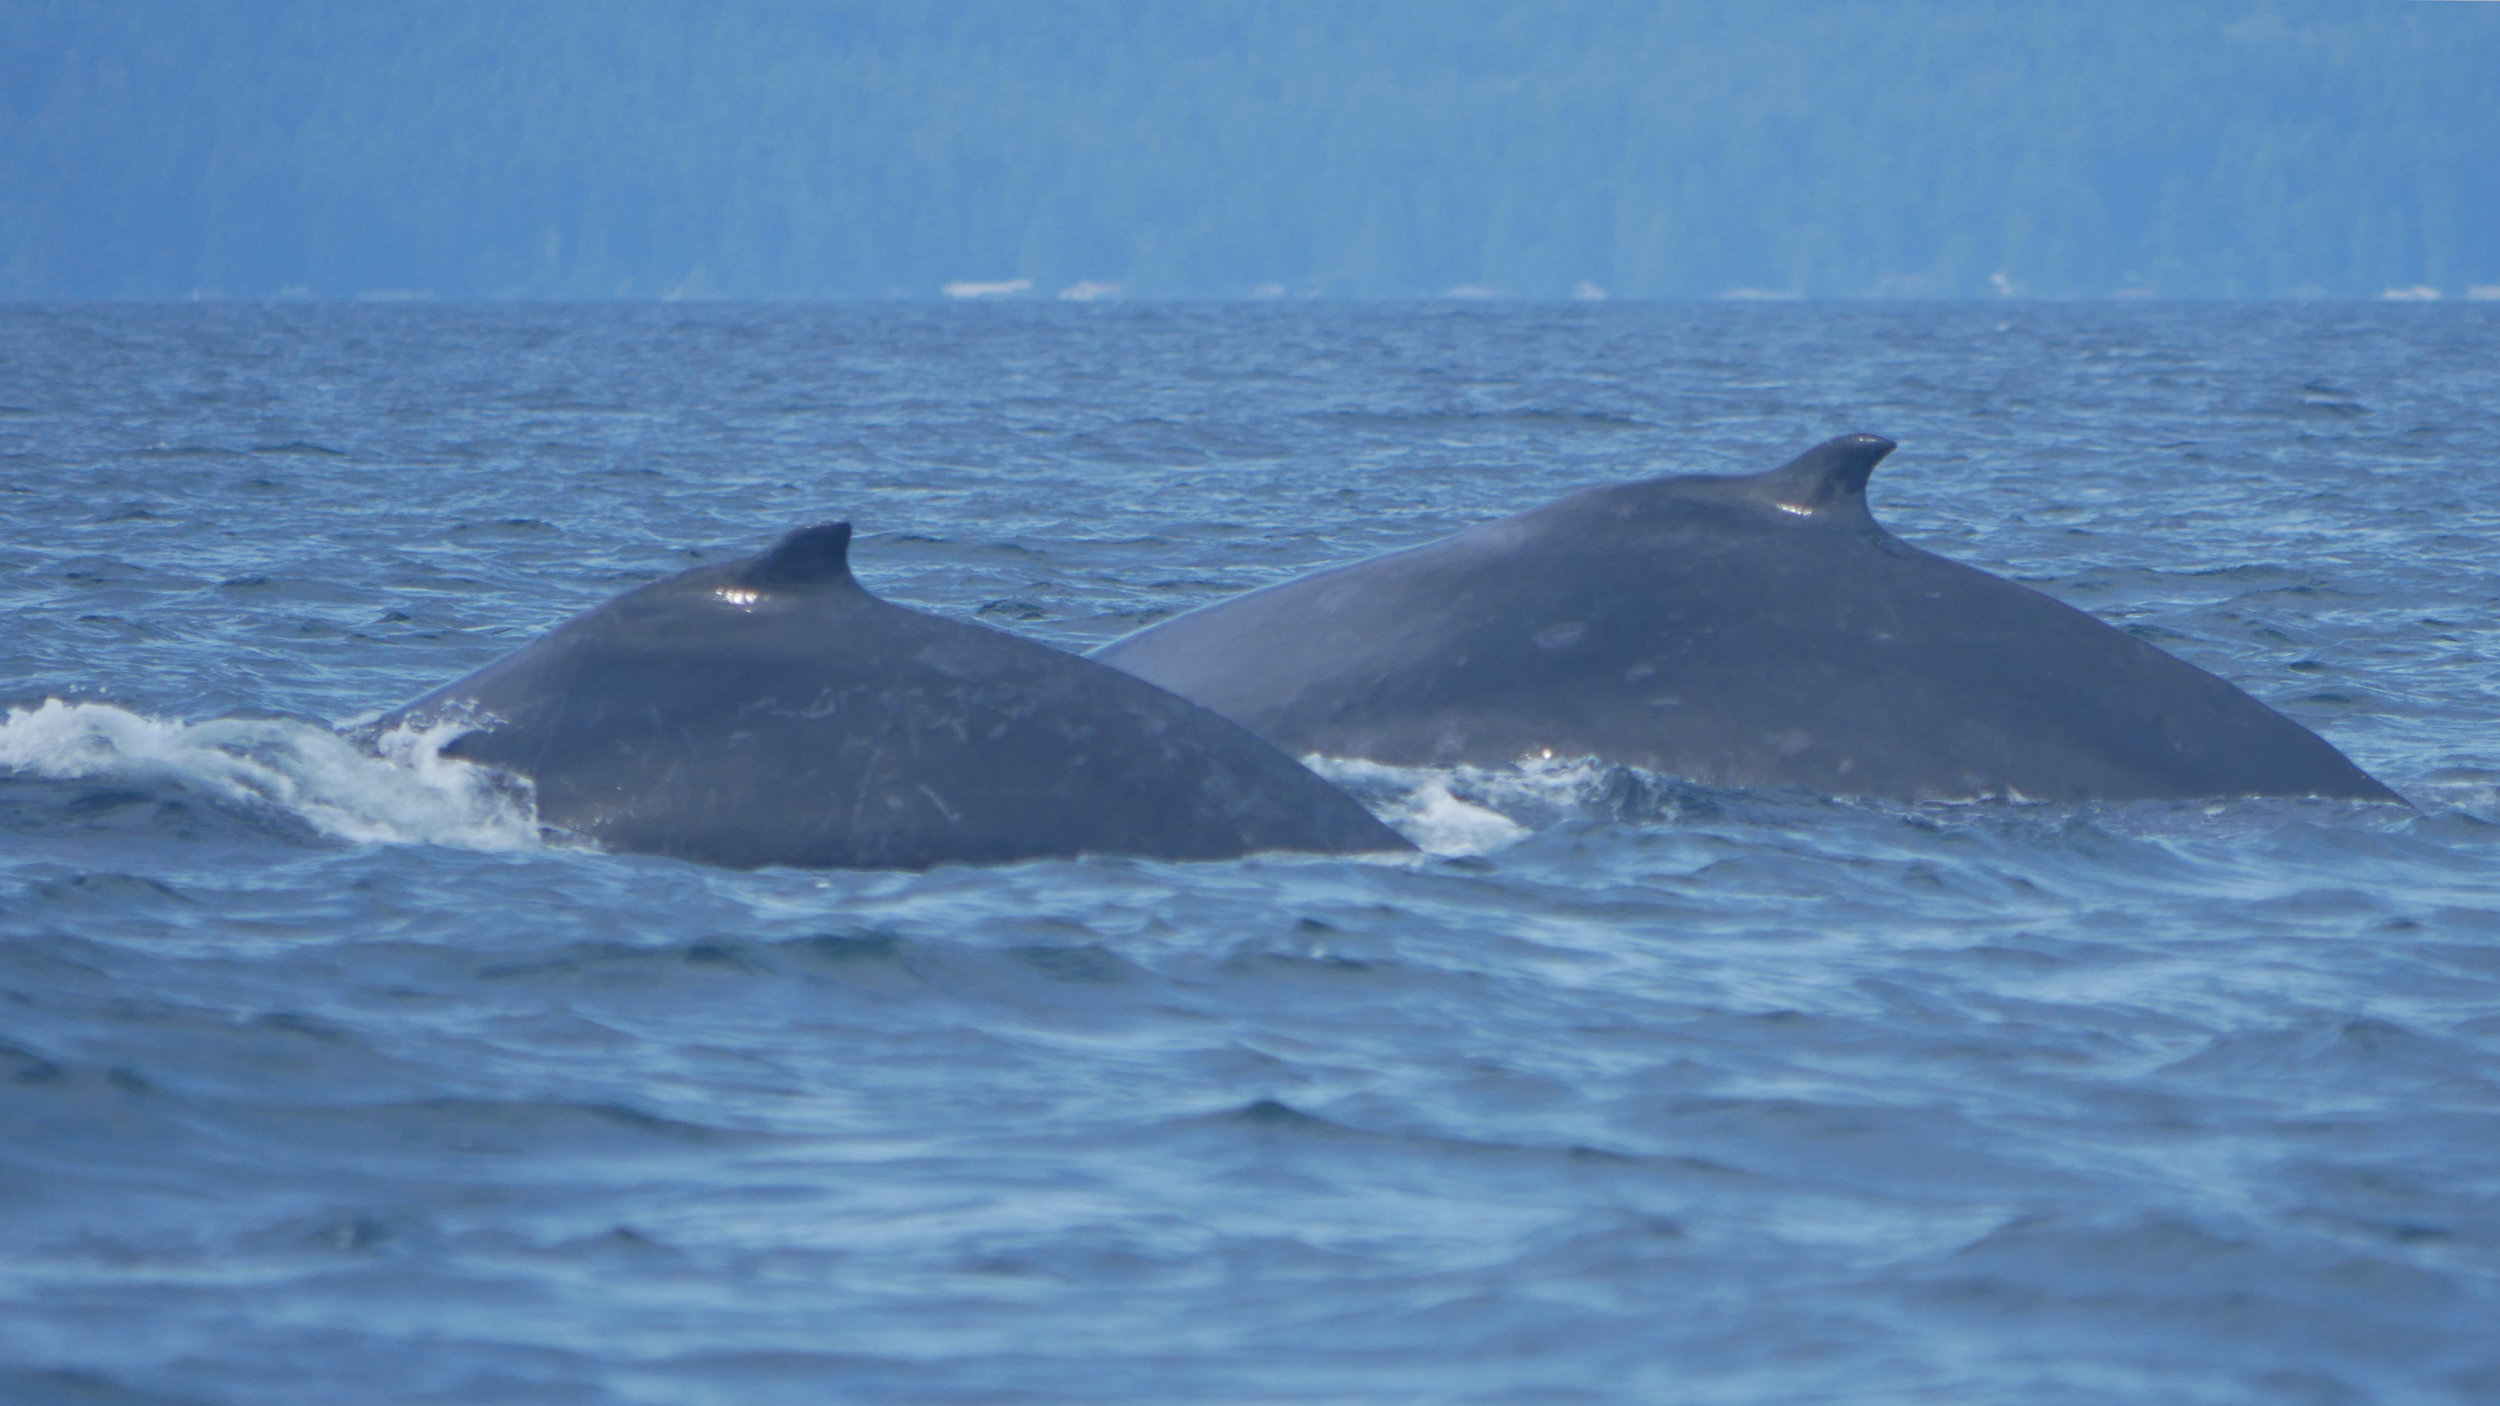 Slate (right) and her calf (left) diving together! Photo by Rebeka Pirker.